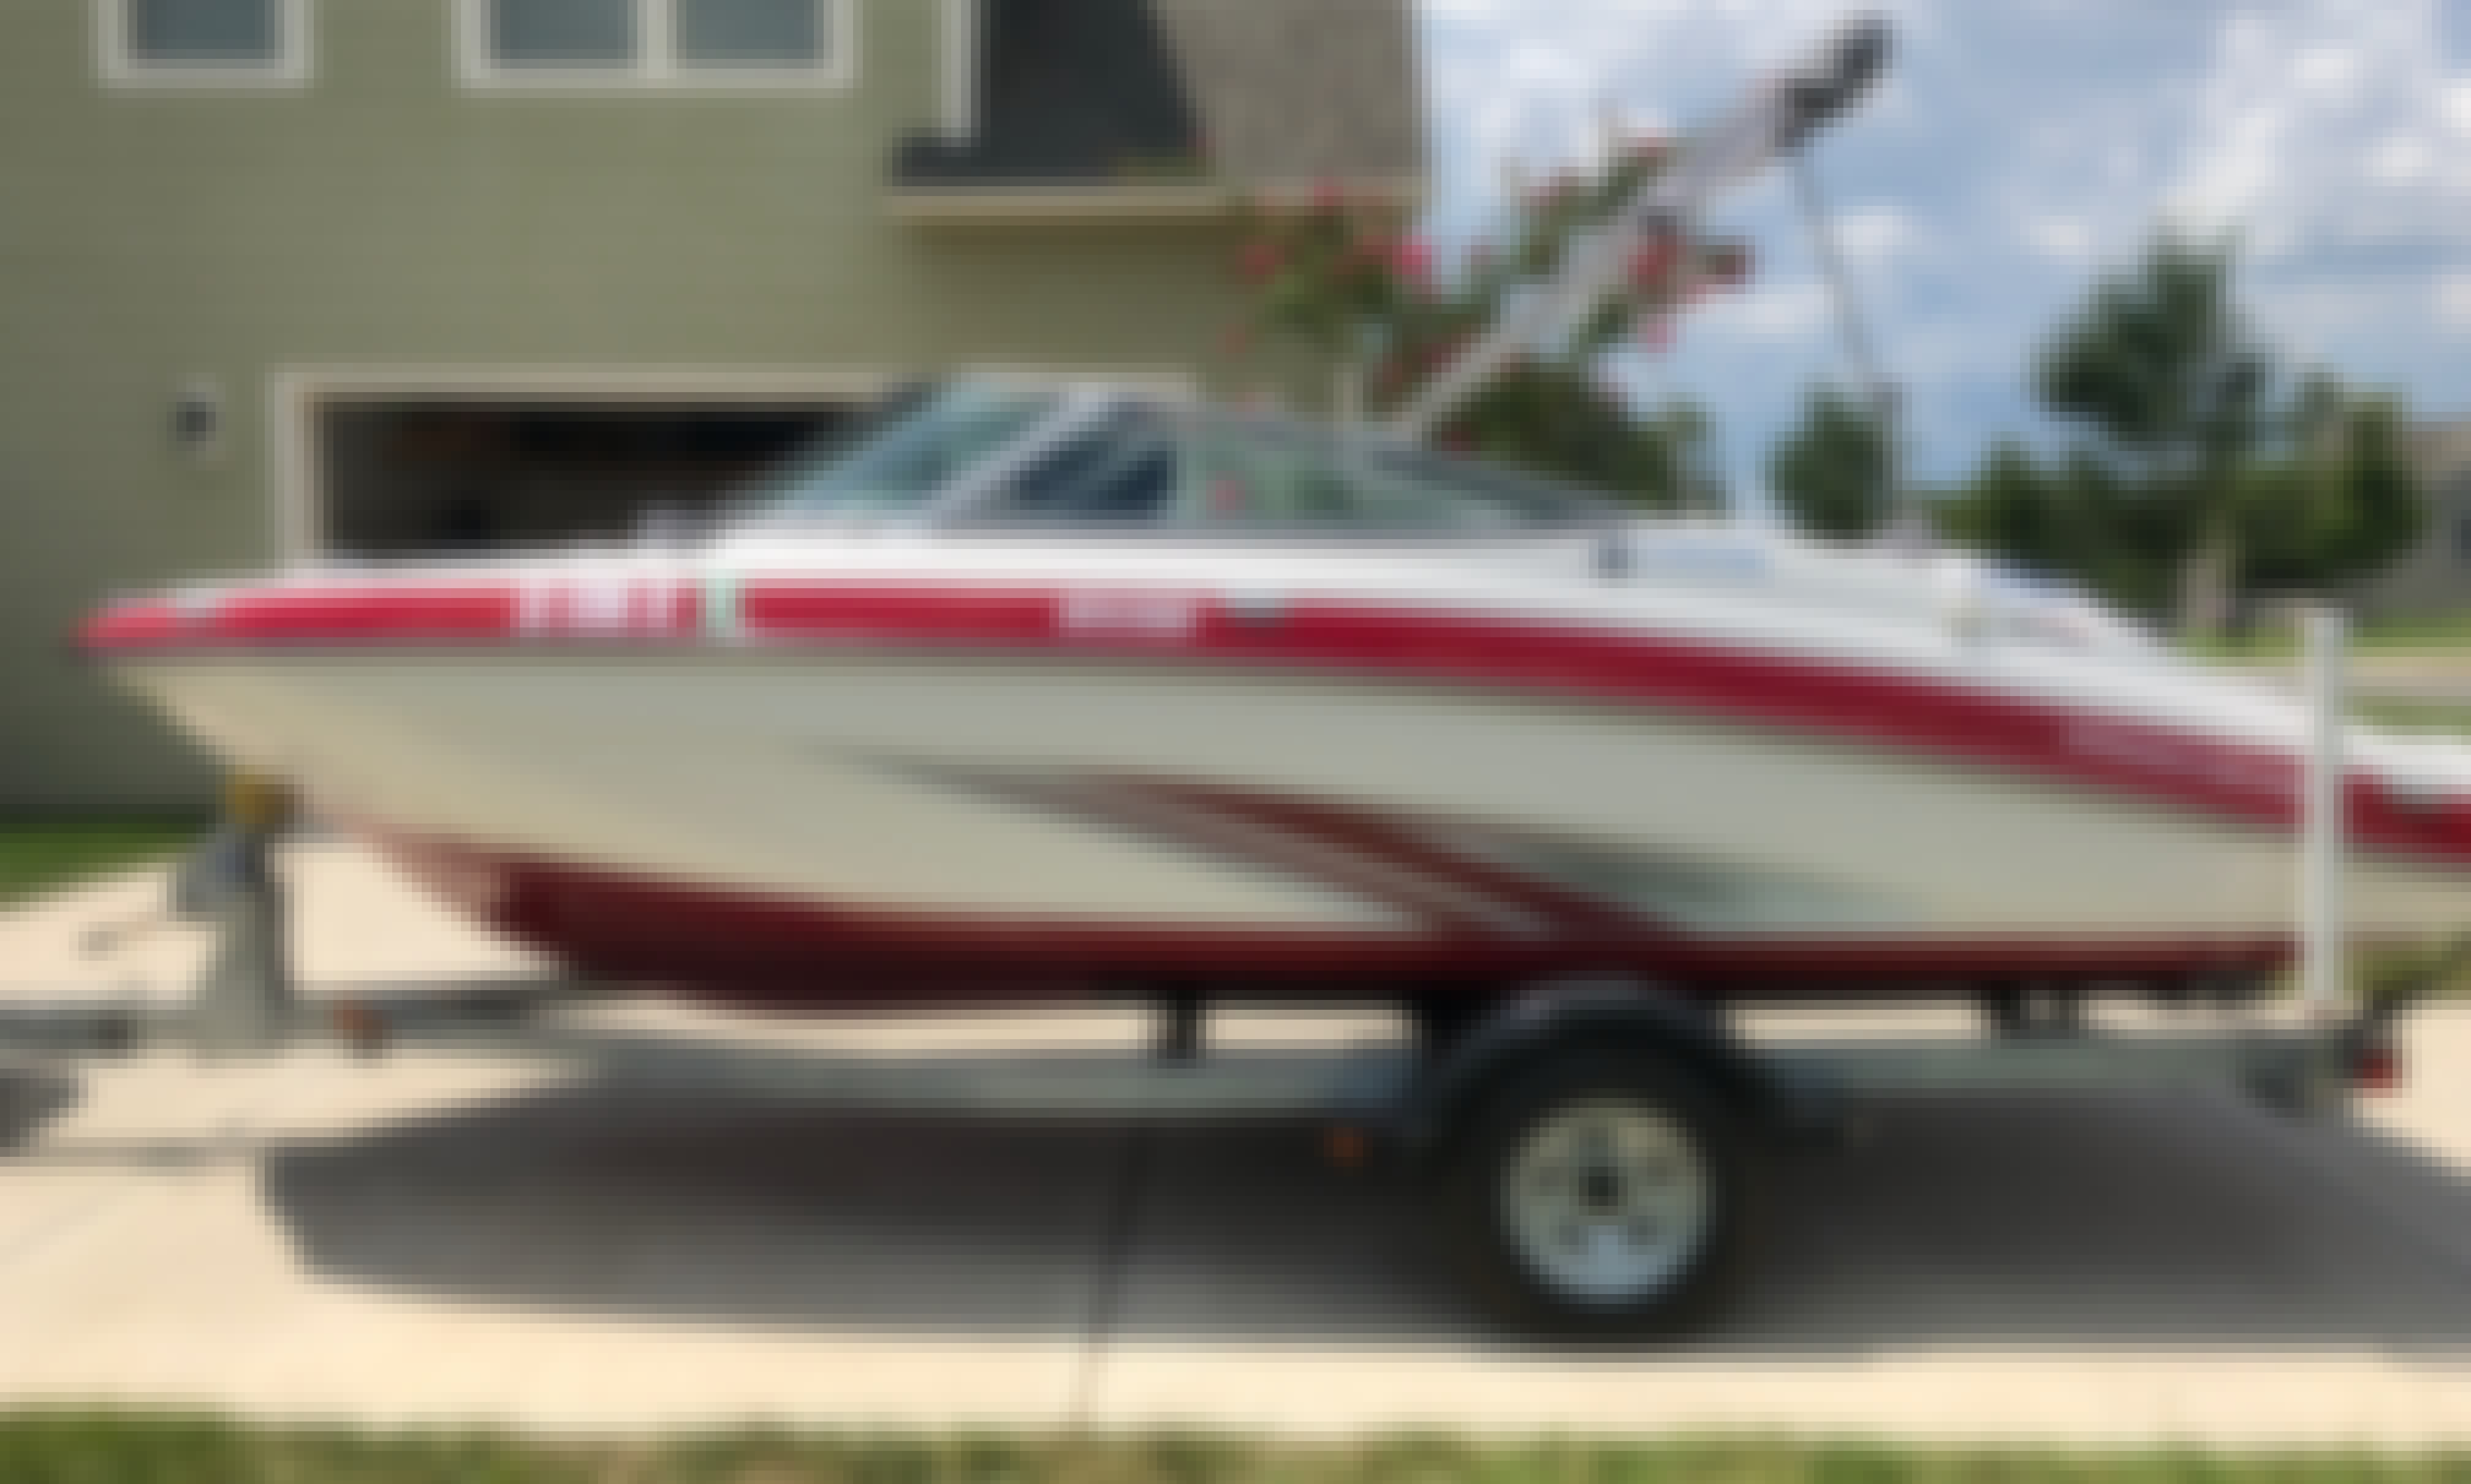 2016 Yamaha Sx192 for rent on Lake Wylie